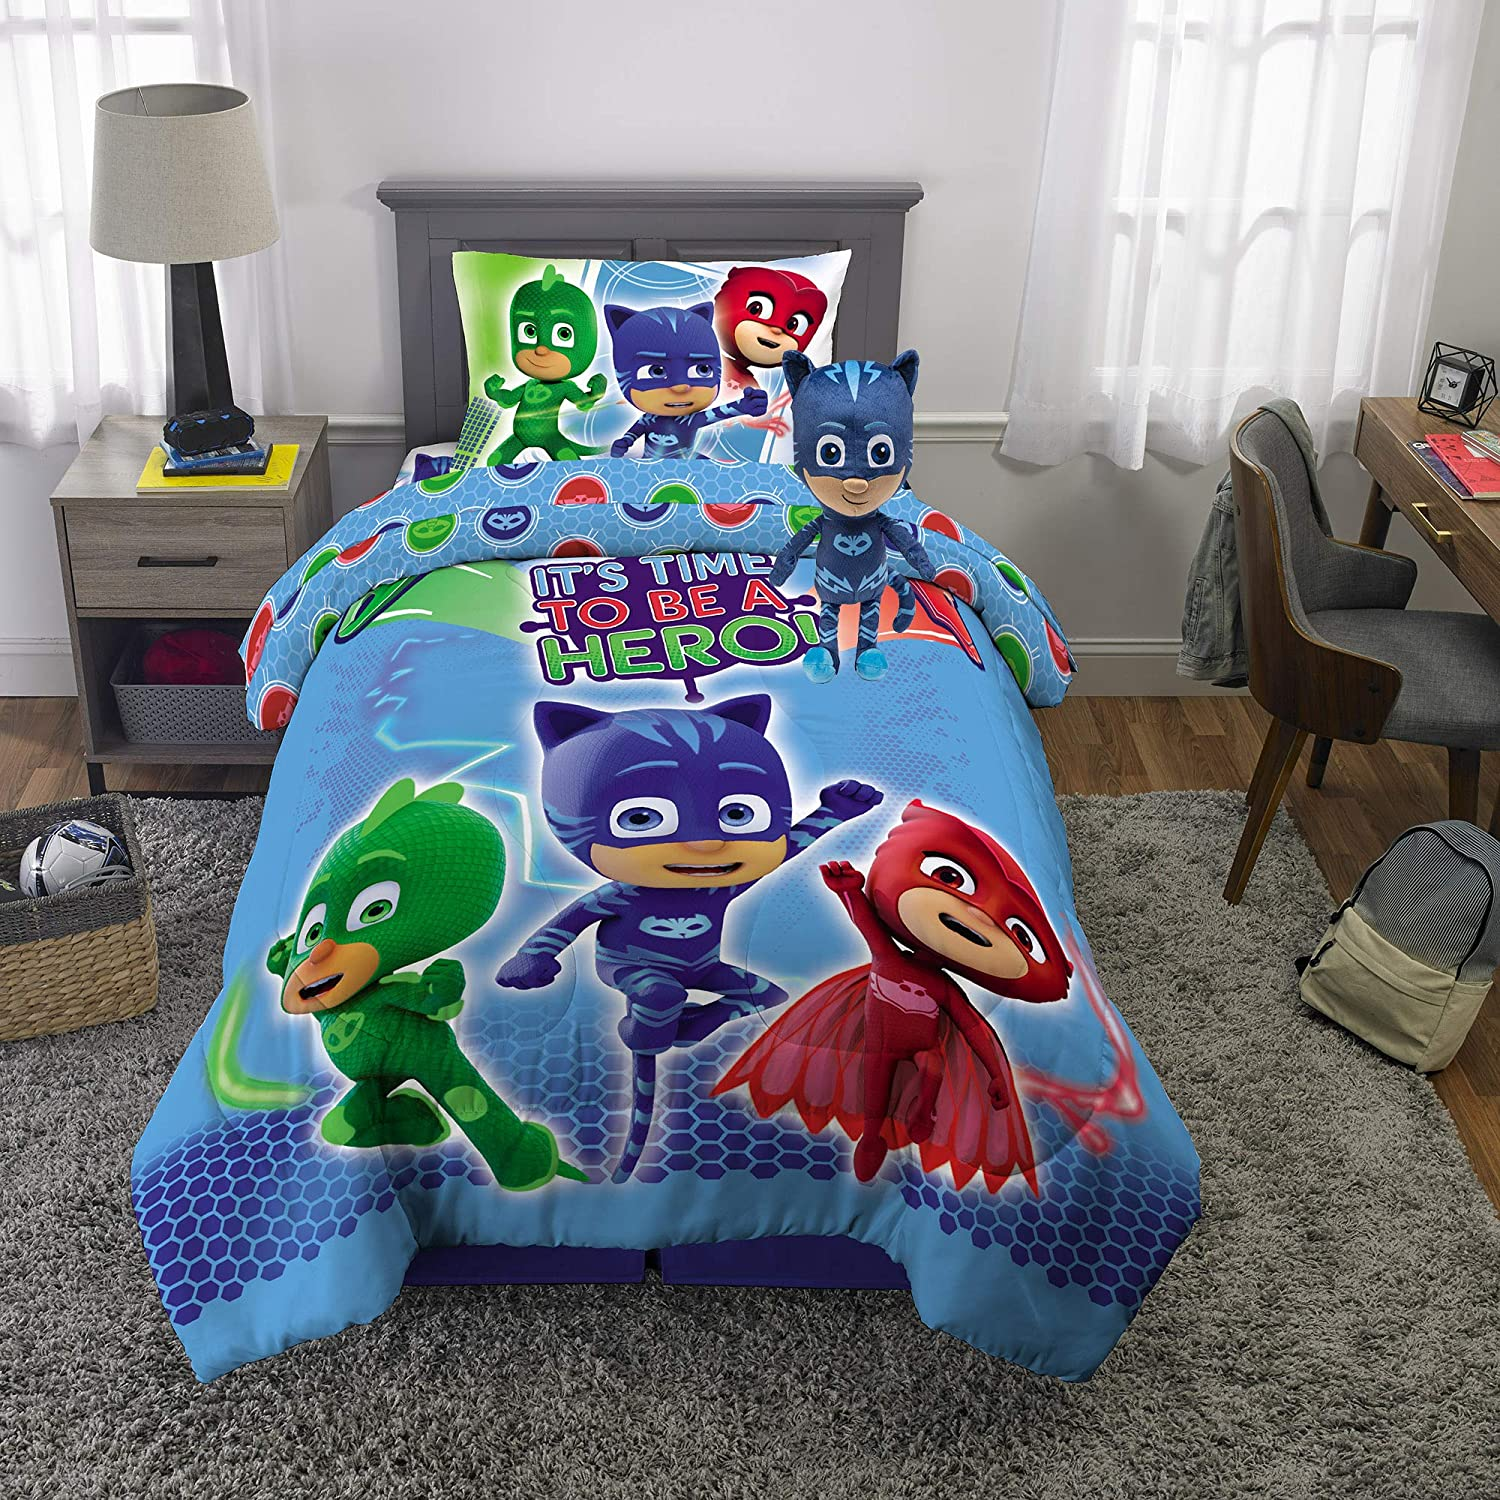 Franco Kids Bedding Super Soft Comforter with Sheets and Plush Cuddle Pillow Set, 5 Piece Twin Size, PJ Masks